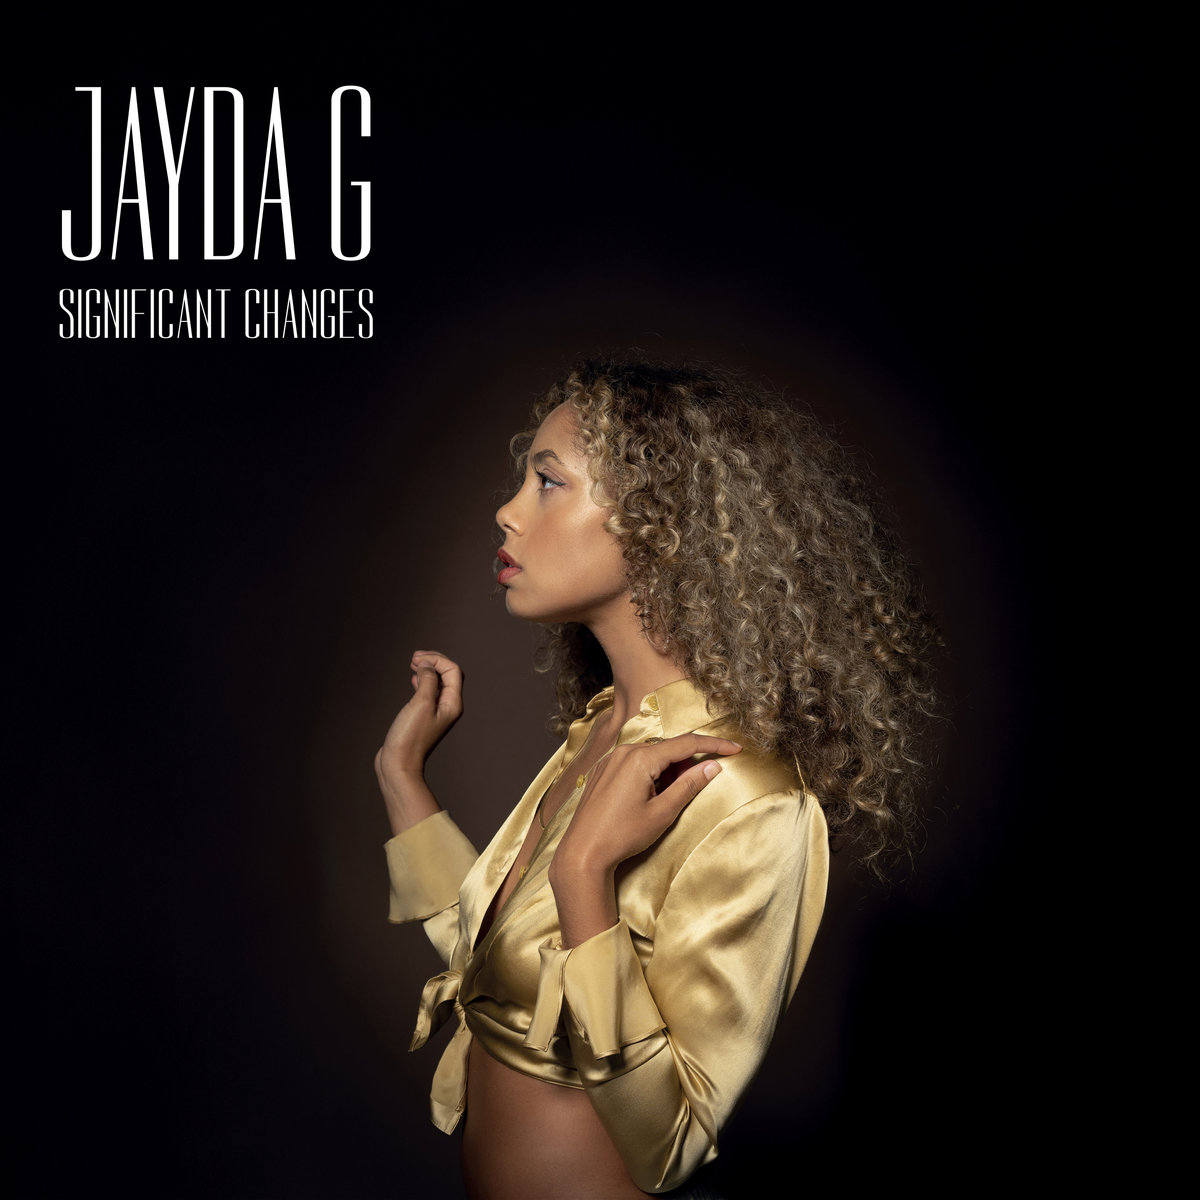 41ec2aa67d0 Album of the week  Jayda G – Significant Changes